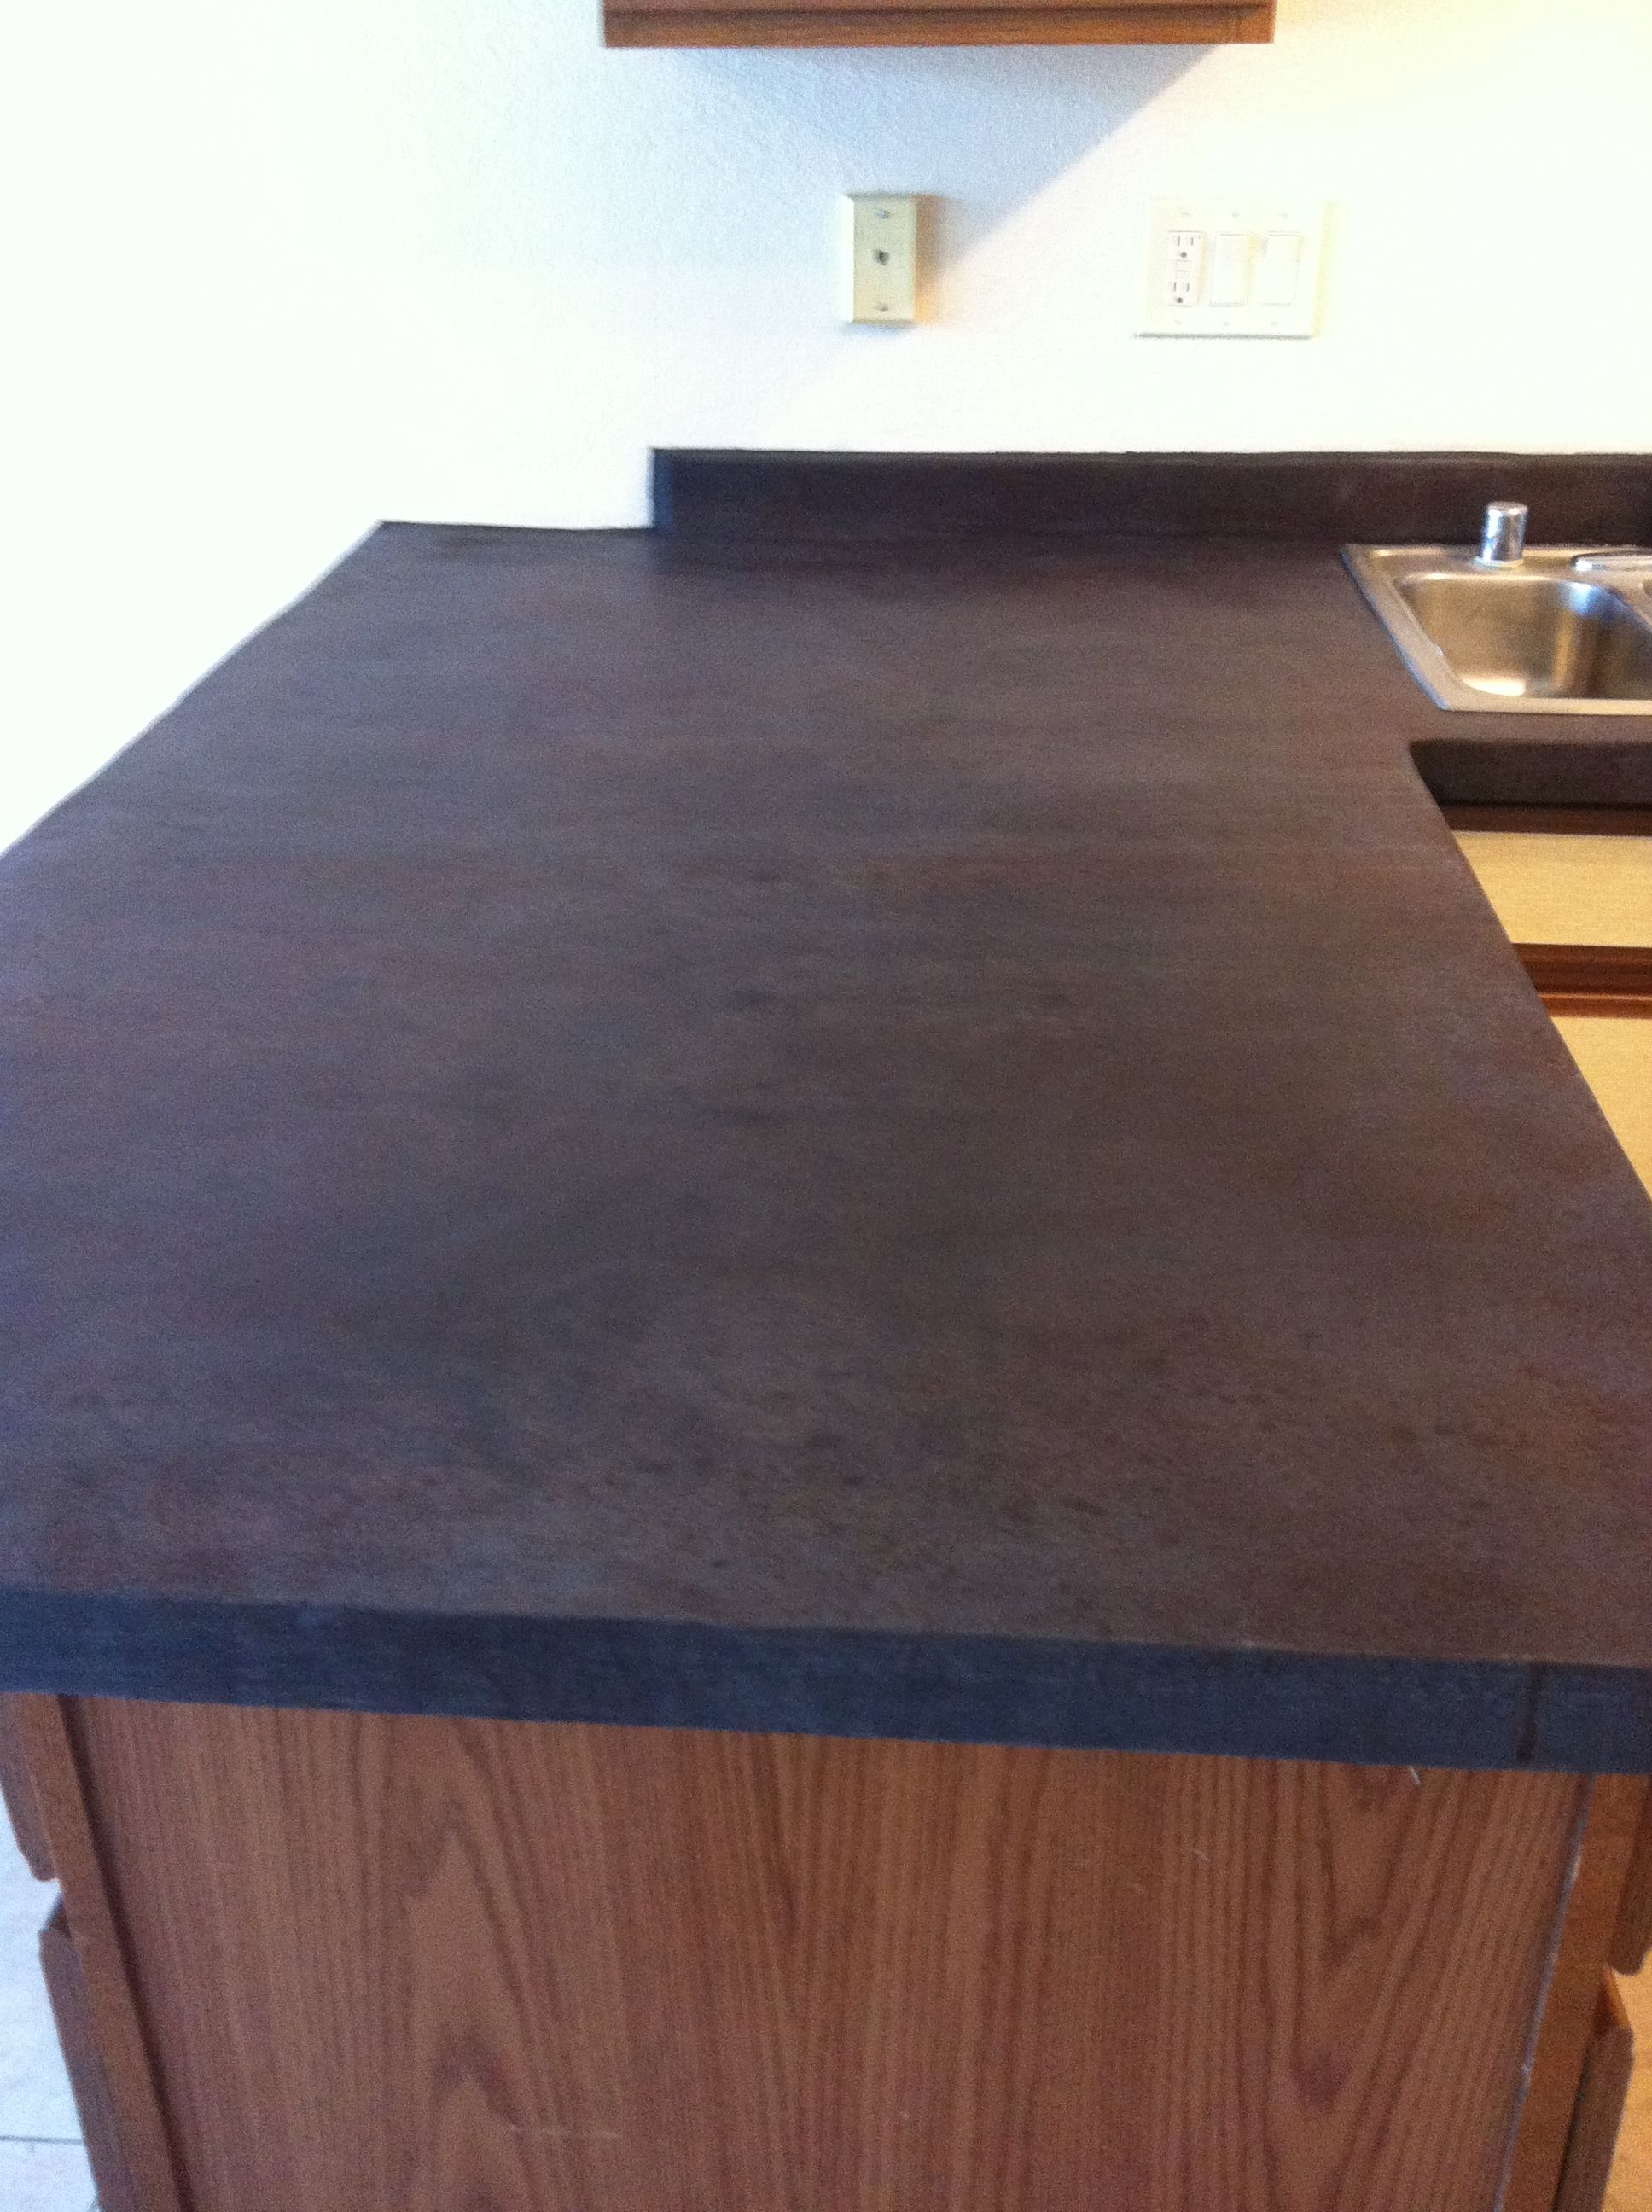 Concrete Countertop Overlay With Images Countertop Overlay